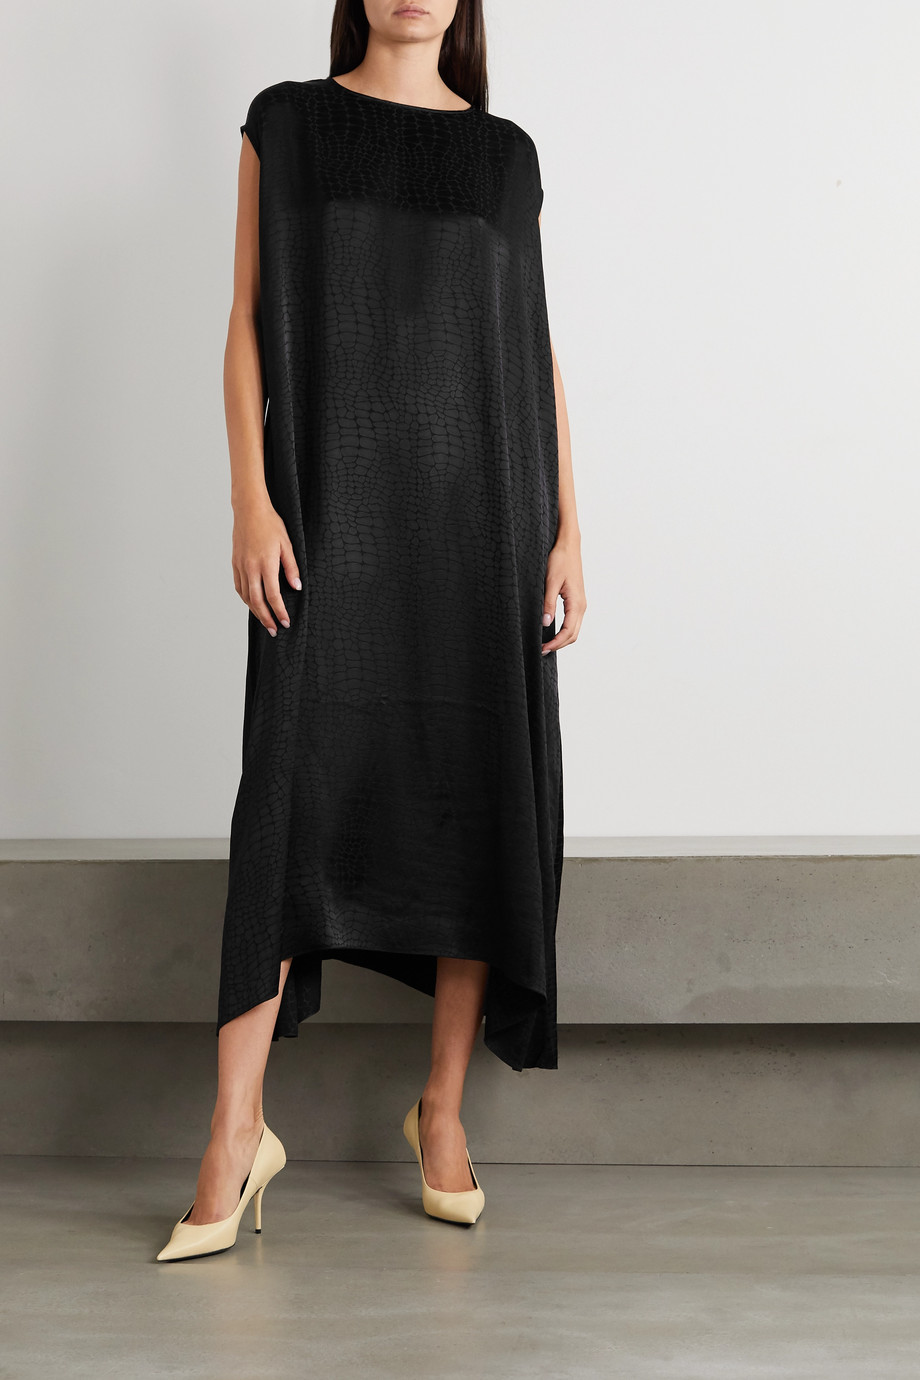 Vetements Asymmetric satin-jacquard dress